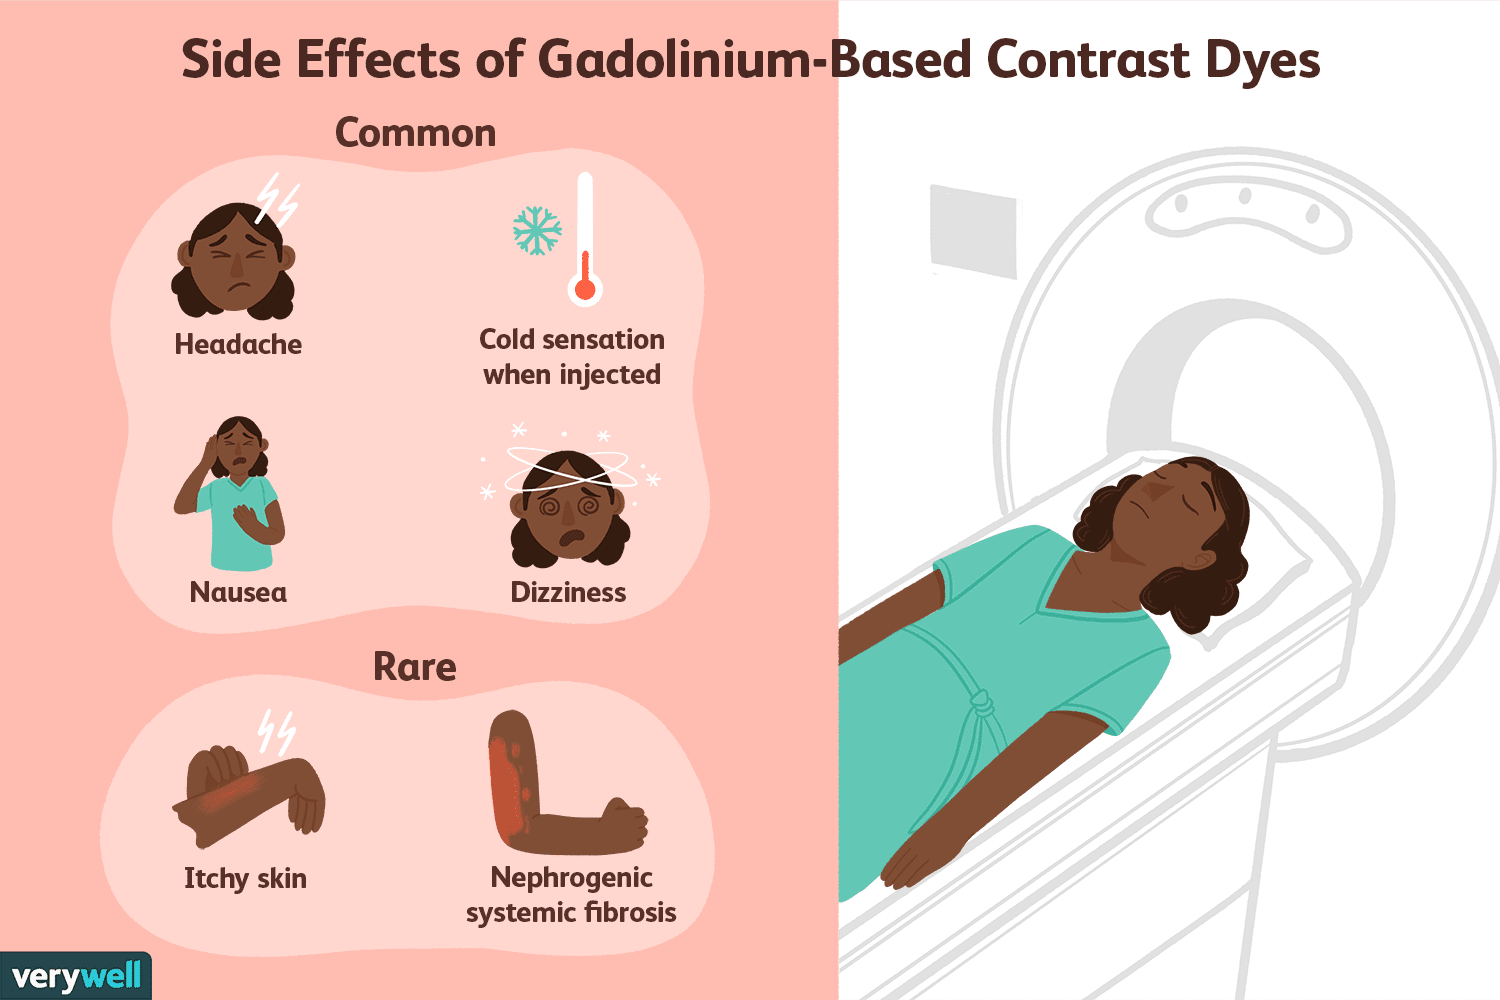 Side Effects of Gadolinium-Based Contrast Dyes